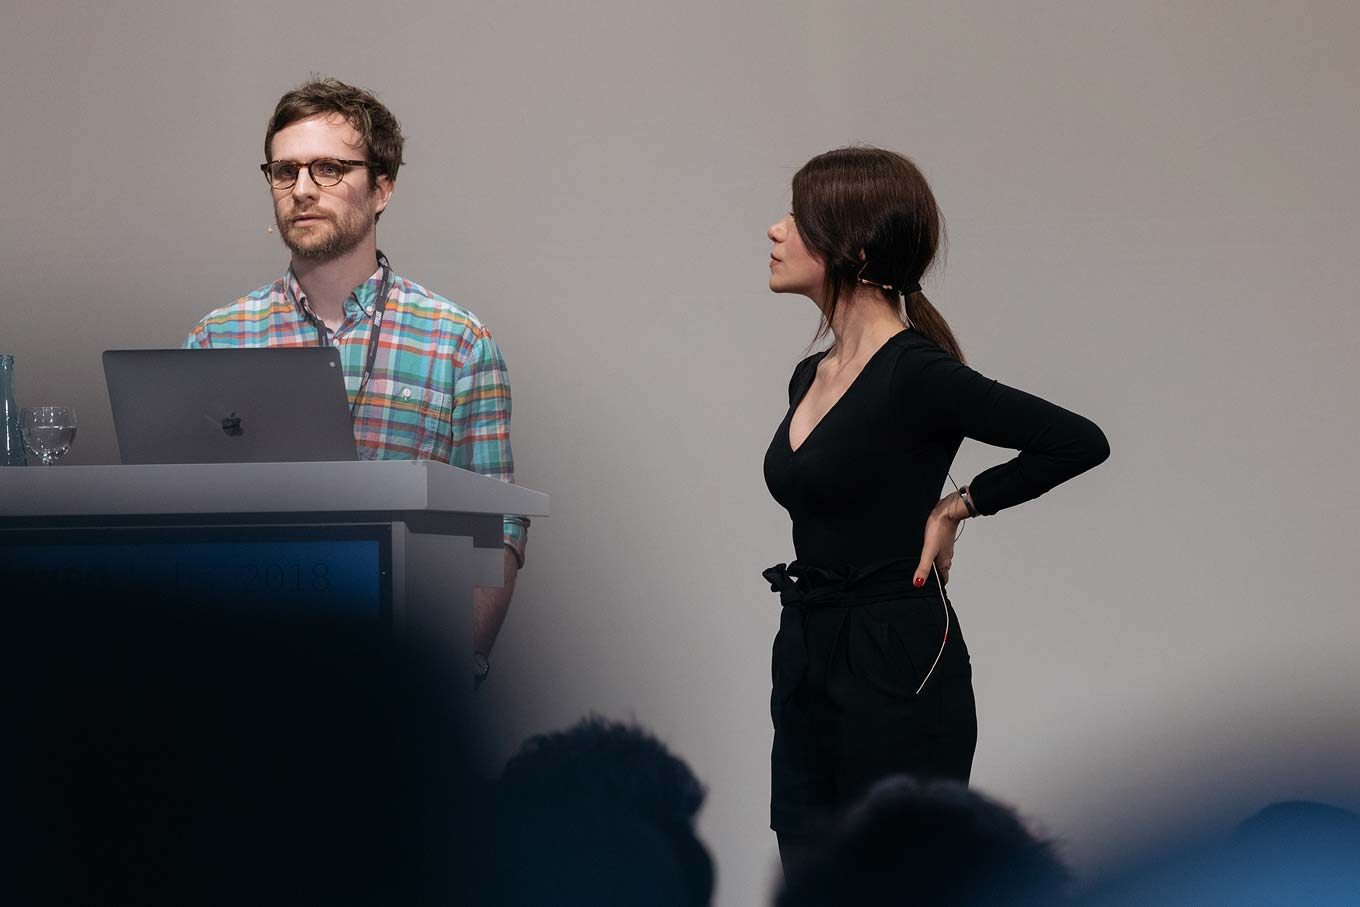 Sahar Afshar and José Miguel Solé Bruning presenting at TYPO Labs 2018.